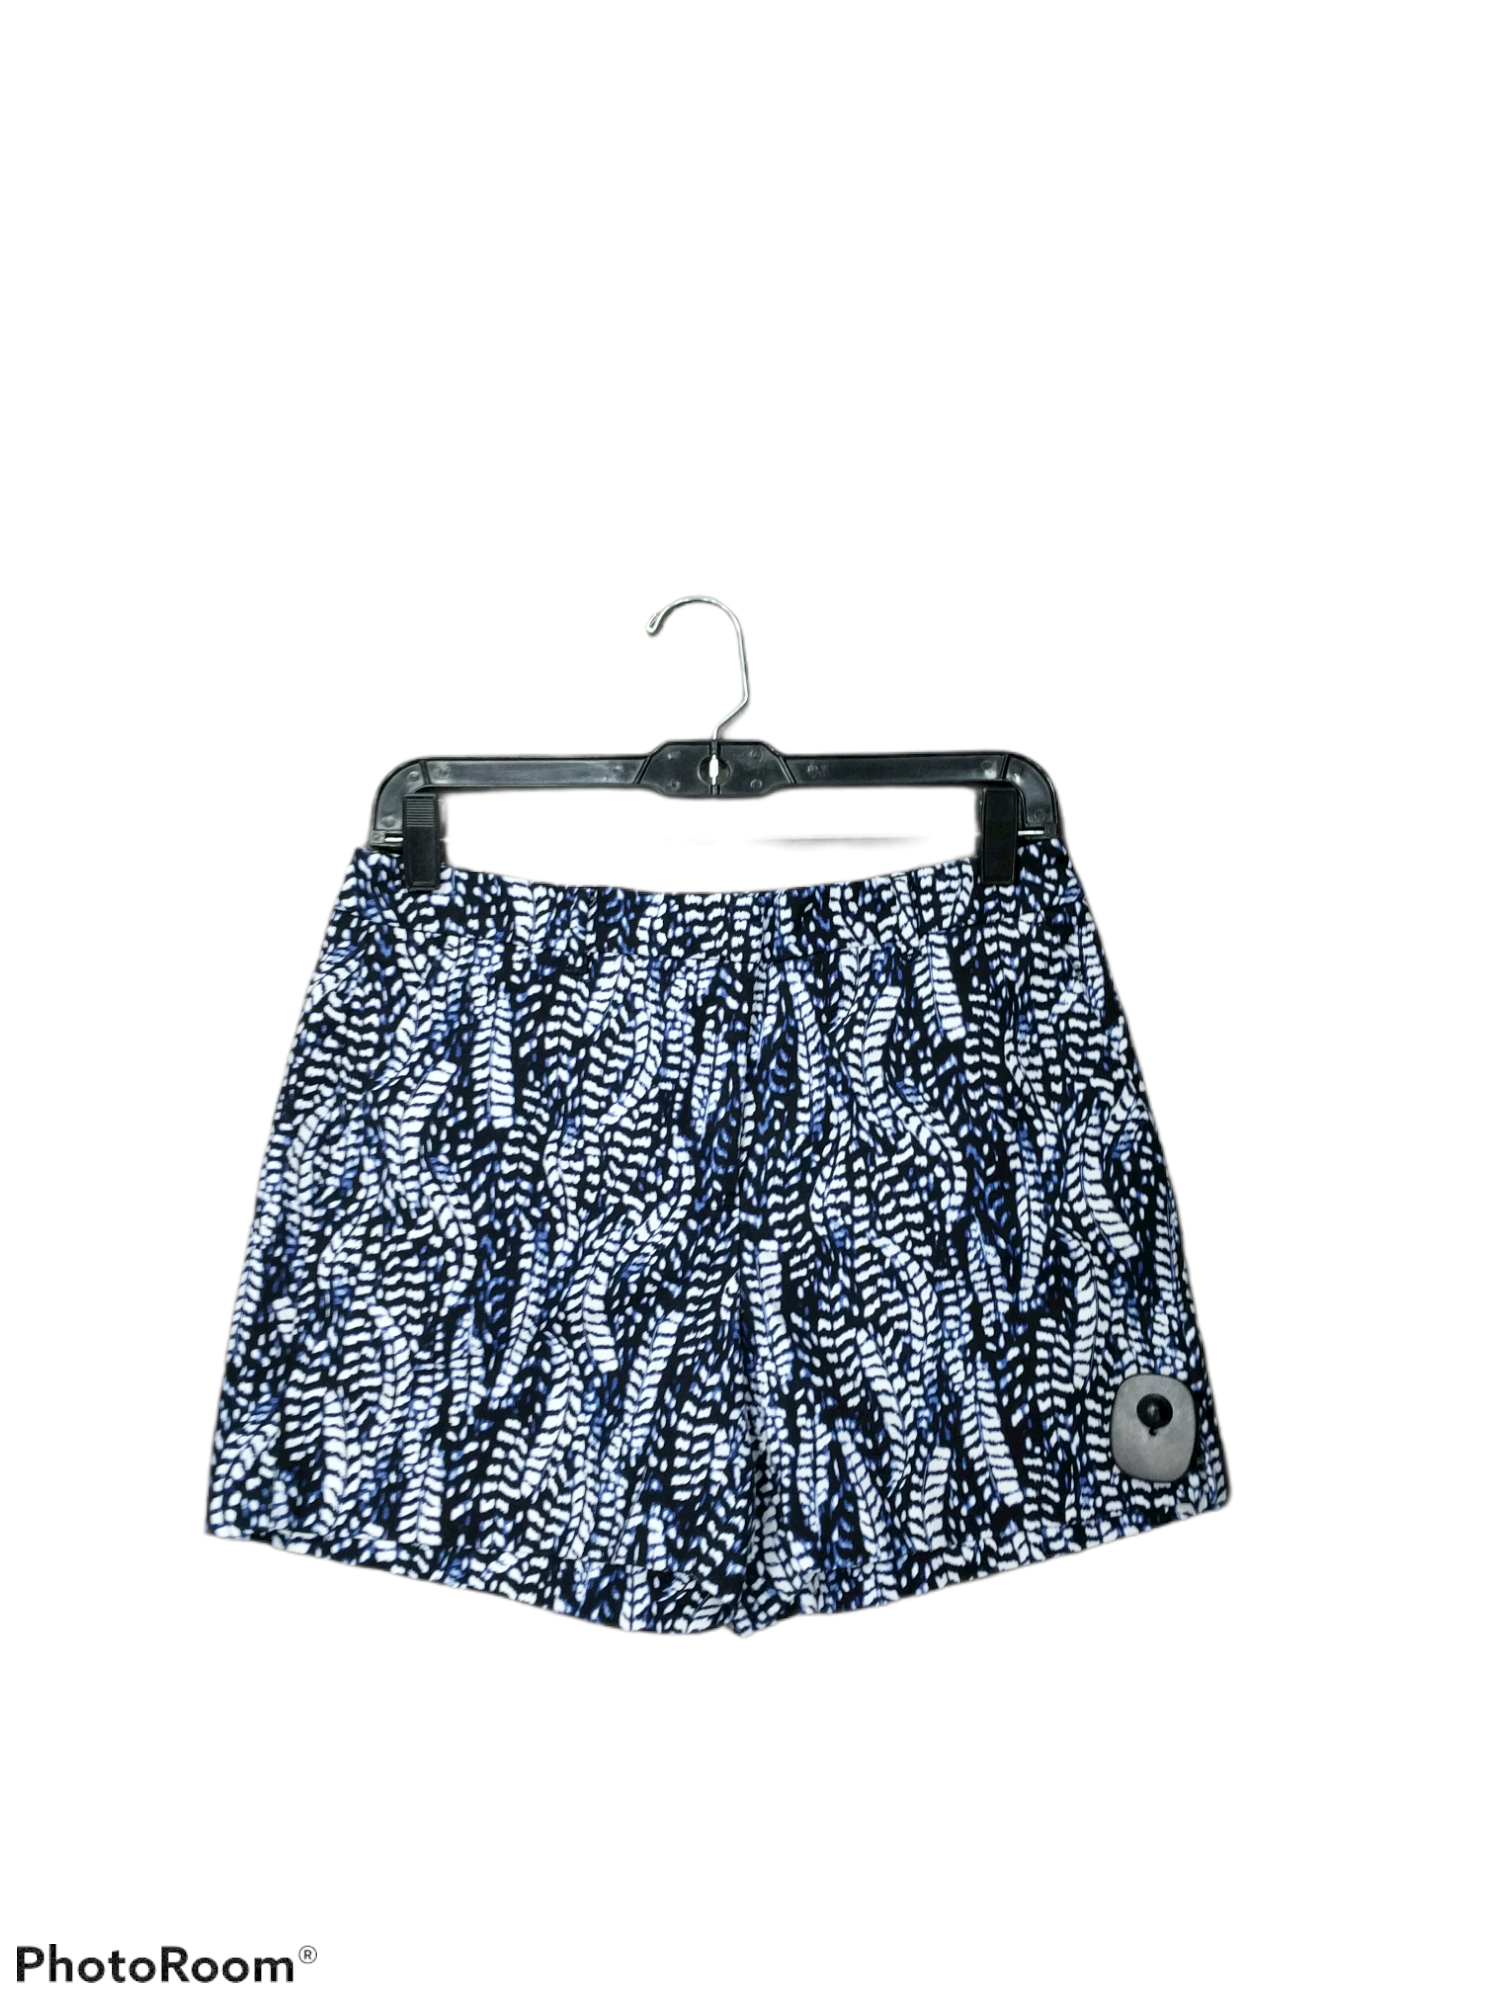 Primary Photo - brand: white house black market , style: shorts , color: blue white , size: 4 , sku: 267-26791-242